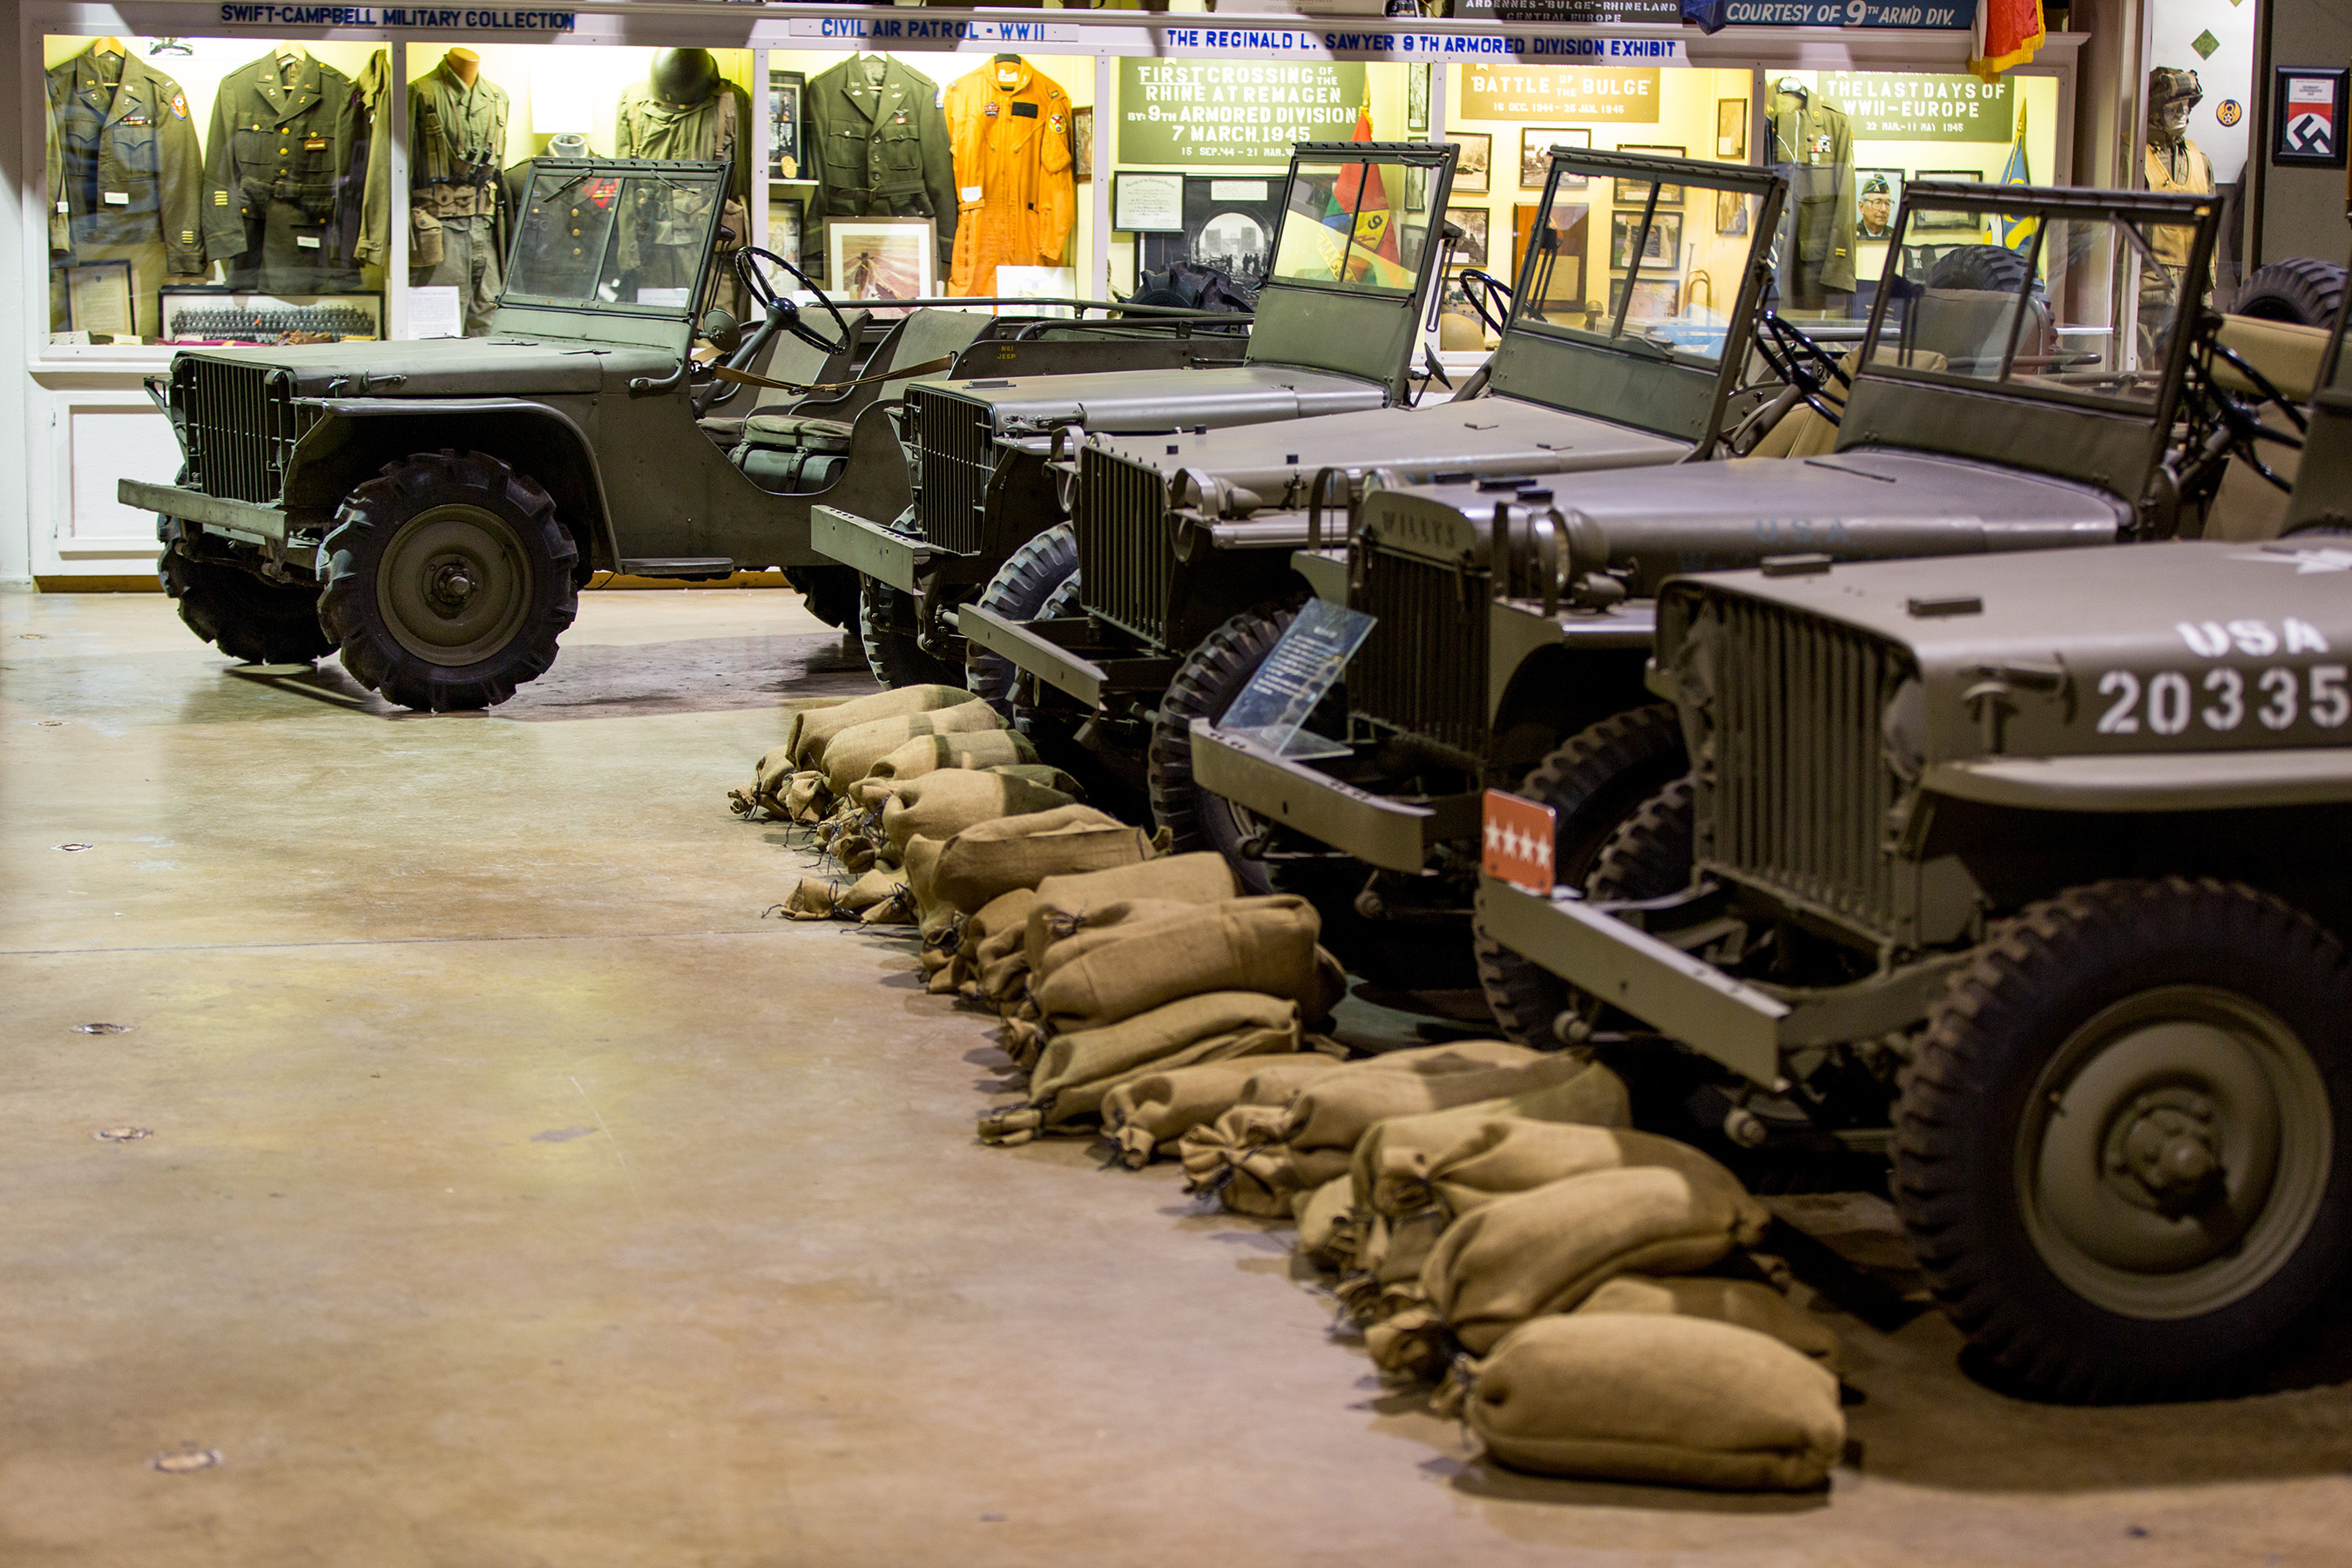 """The 1940 Ford Pilot Model GP-No. 1 Pygmy is placed at the head of a row of rare and early """"jeeps"""" at the U.S. Veterans Memorial Museum, illustrating the vehicle's lineage. From left to right: 1941 Ford GP (serial no. 9911), 1941 Bantam BRC (serial no: 1208), 1941 Willys MA (serial no. 85504), and 1941 Willys MB """"Slat Grill"""" (serial no. 102157 and serial no. 105312). (Photo courtesy of the Historic Vehicle Association/Casey Maxon)"""